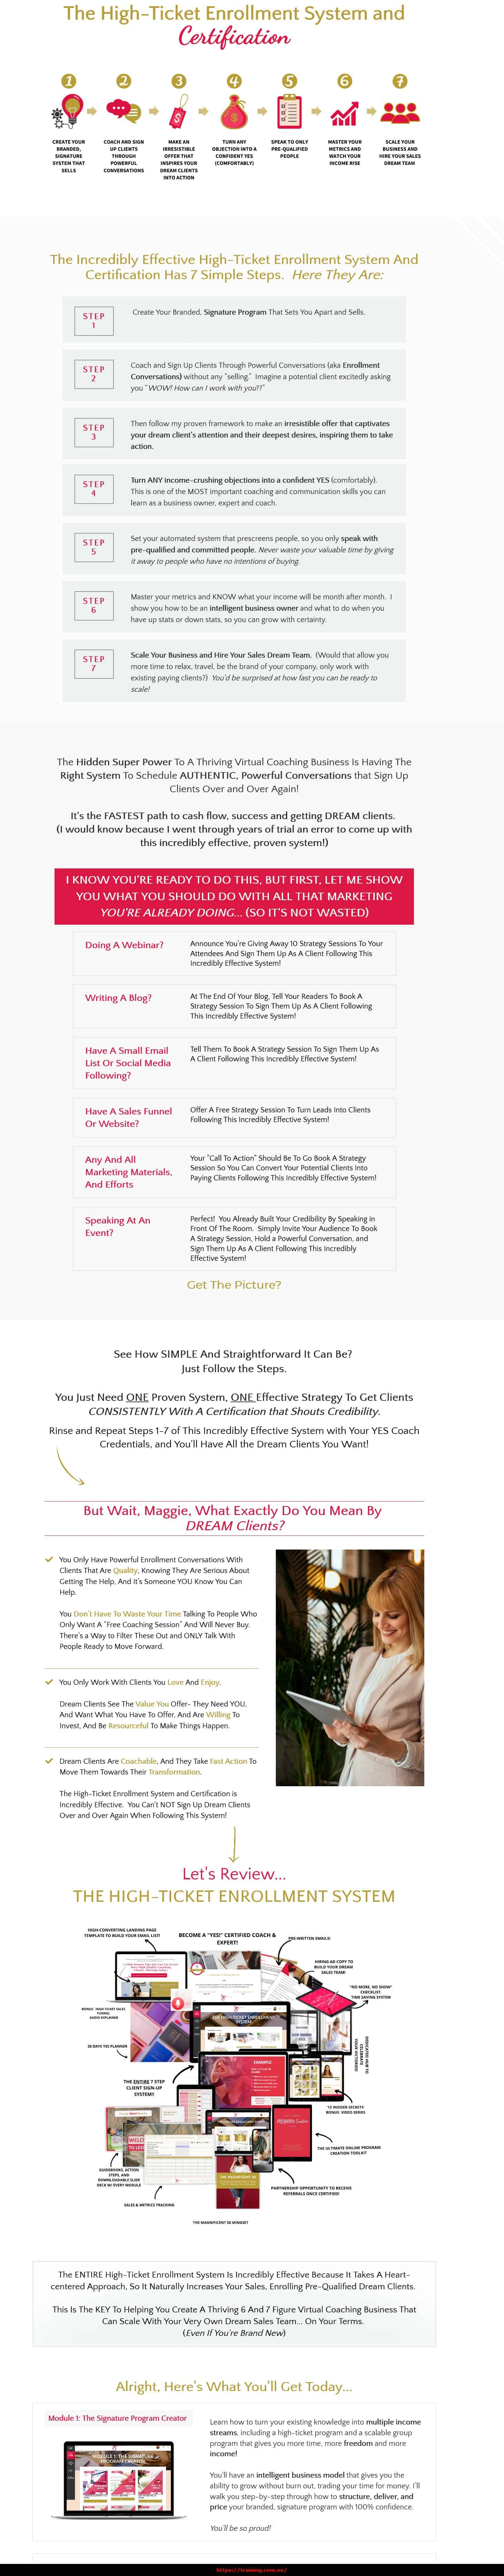 The High-Ticket Enrollment System by Maggie Chu sales page